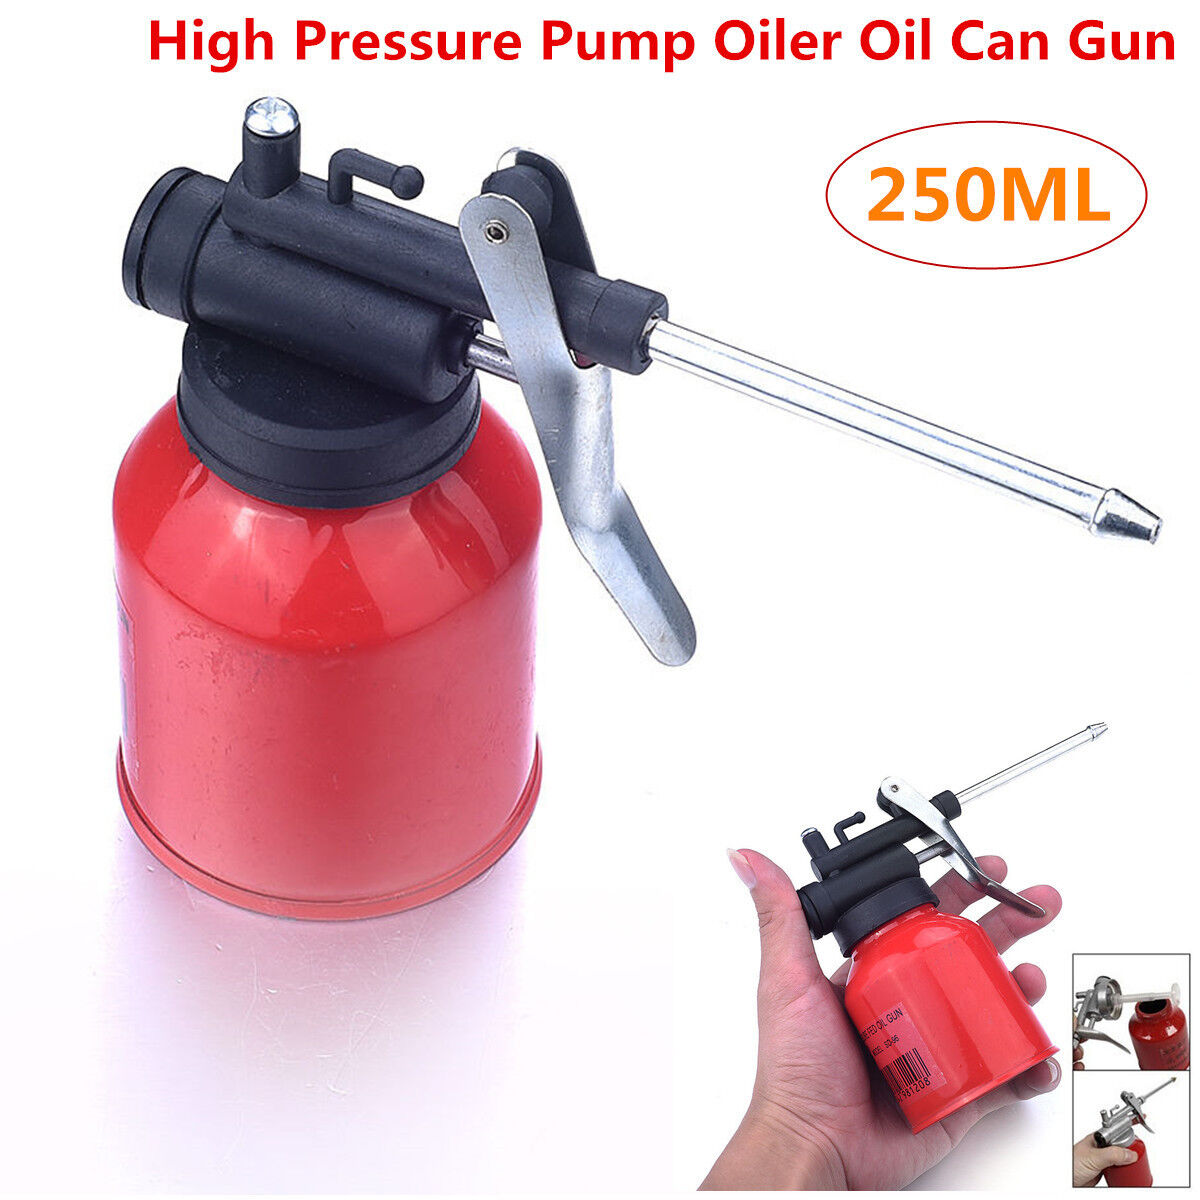 8.5 oz # Metal High Pressure Pump Oiler Oil Can Gun For Lubricants Red 250cc